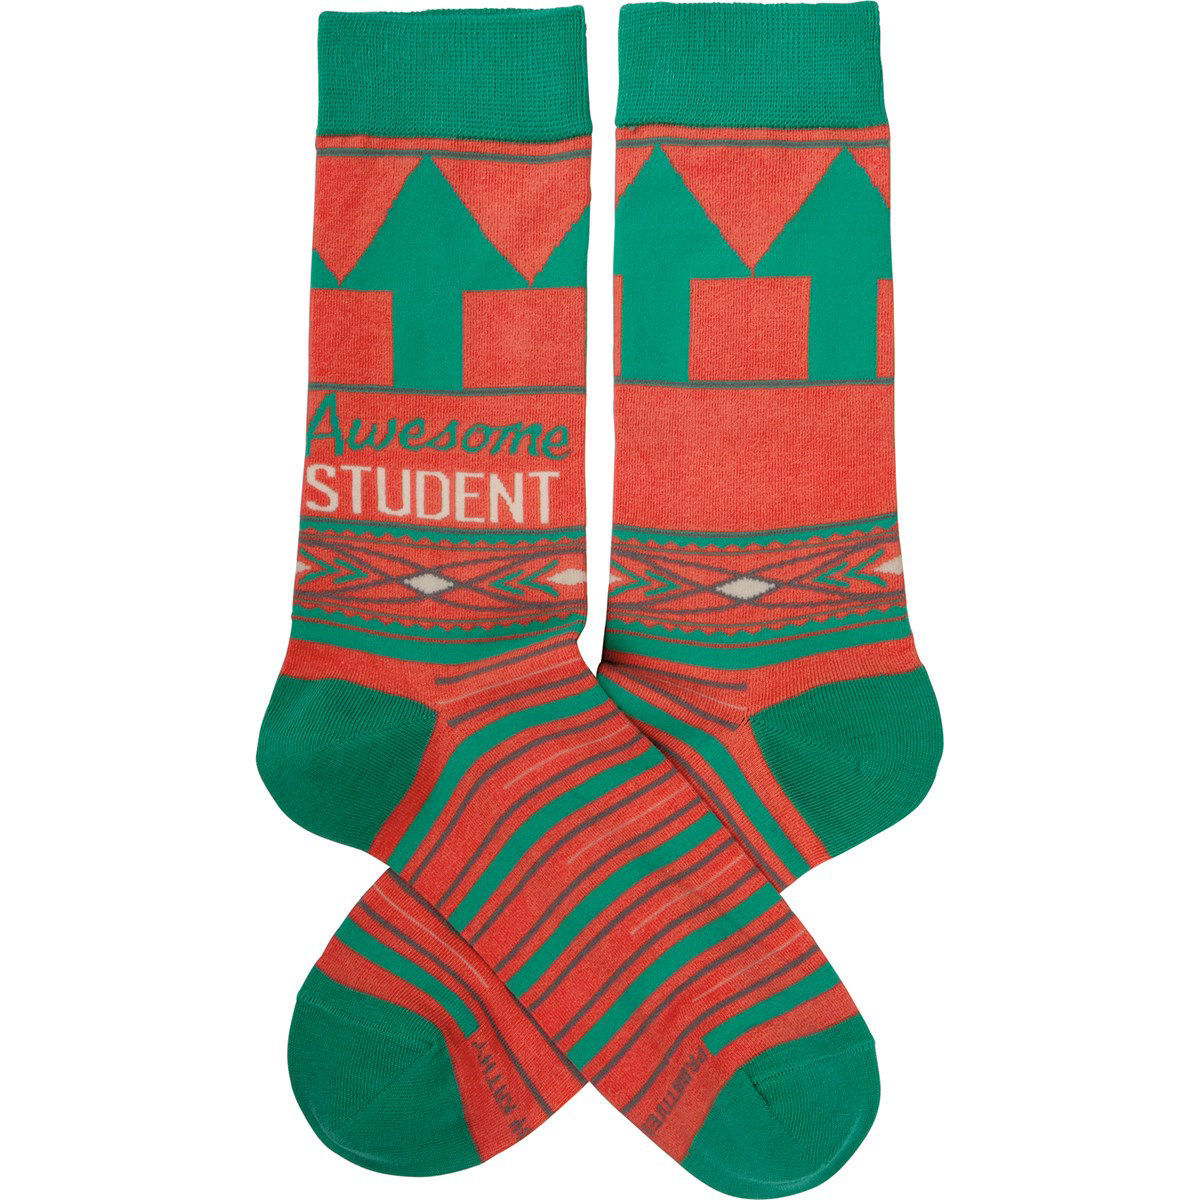 Awesome Student Socks by Primitives by Kathy